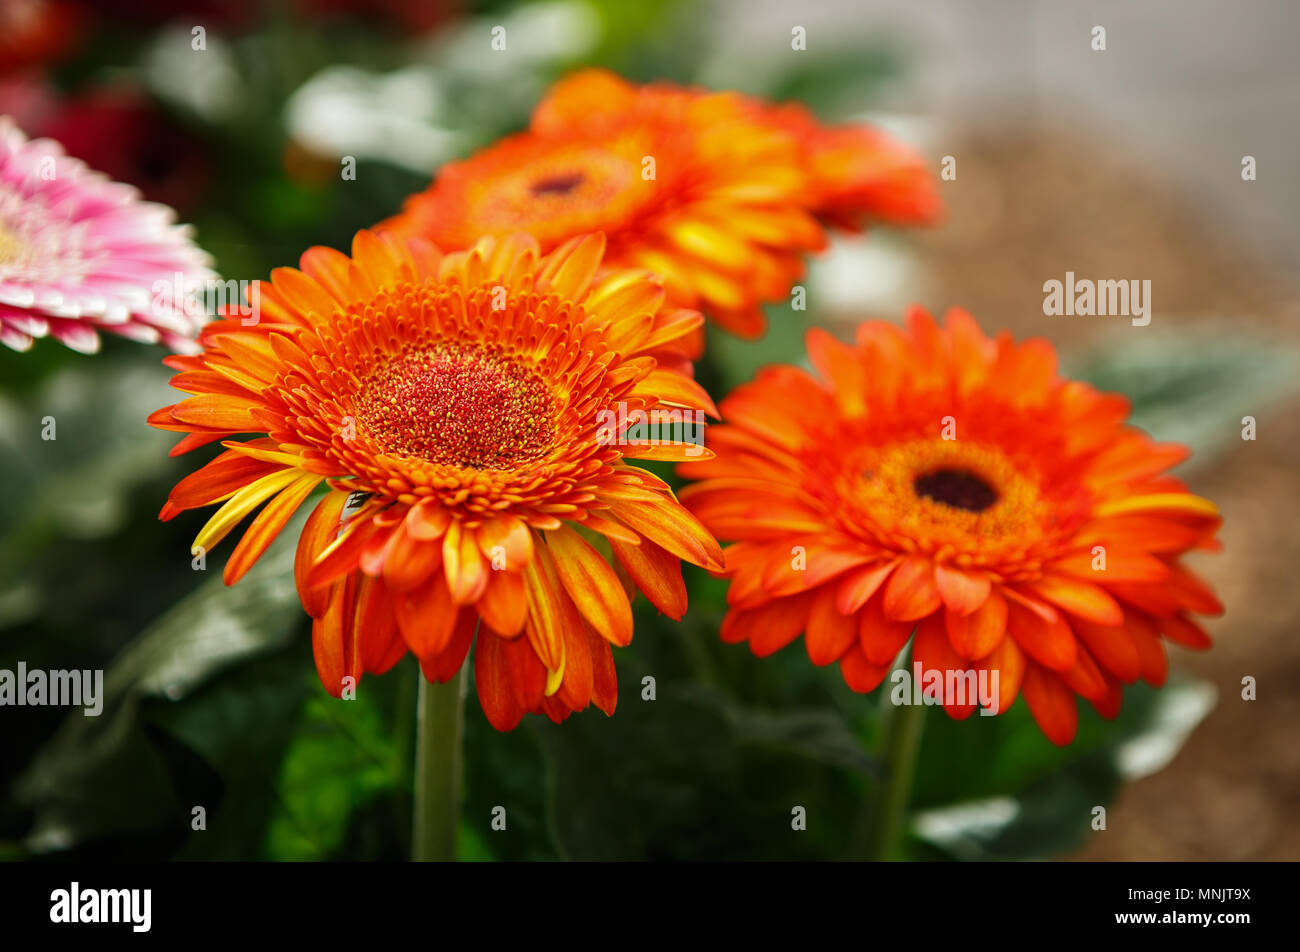 Beautiful colorful orange transvaal daisy flowers bloom in spring garden.Decorative wallpaper with gerbera flower blossom in springtime.Beauty of natu - Stock Image